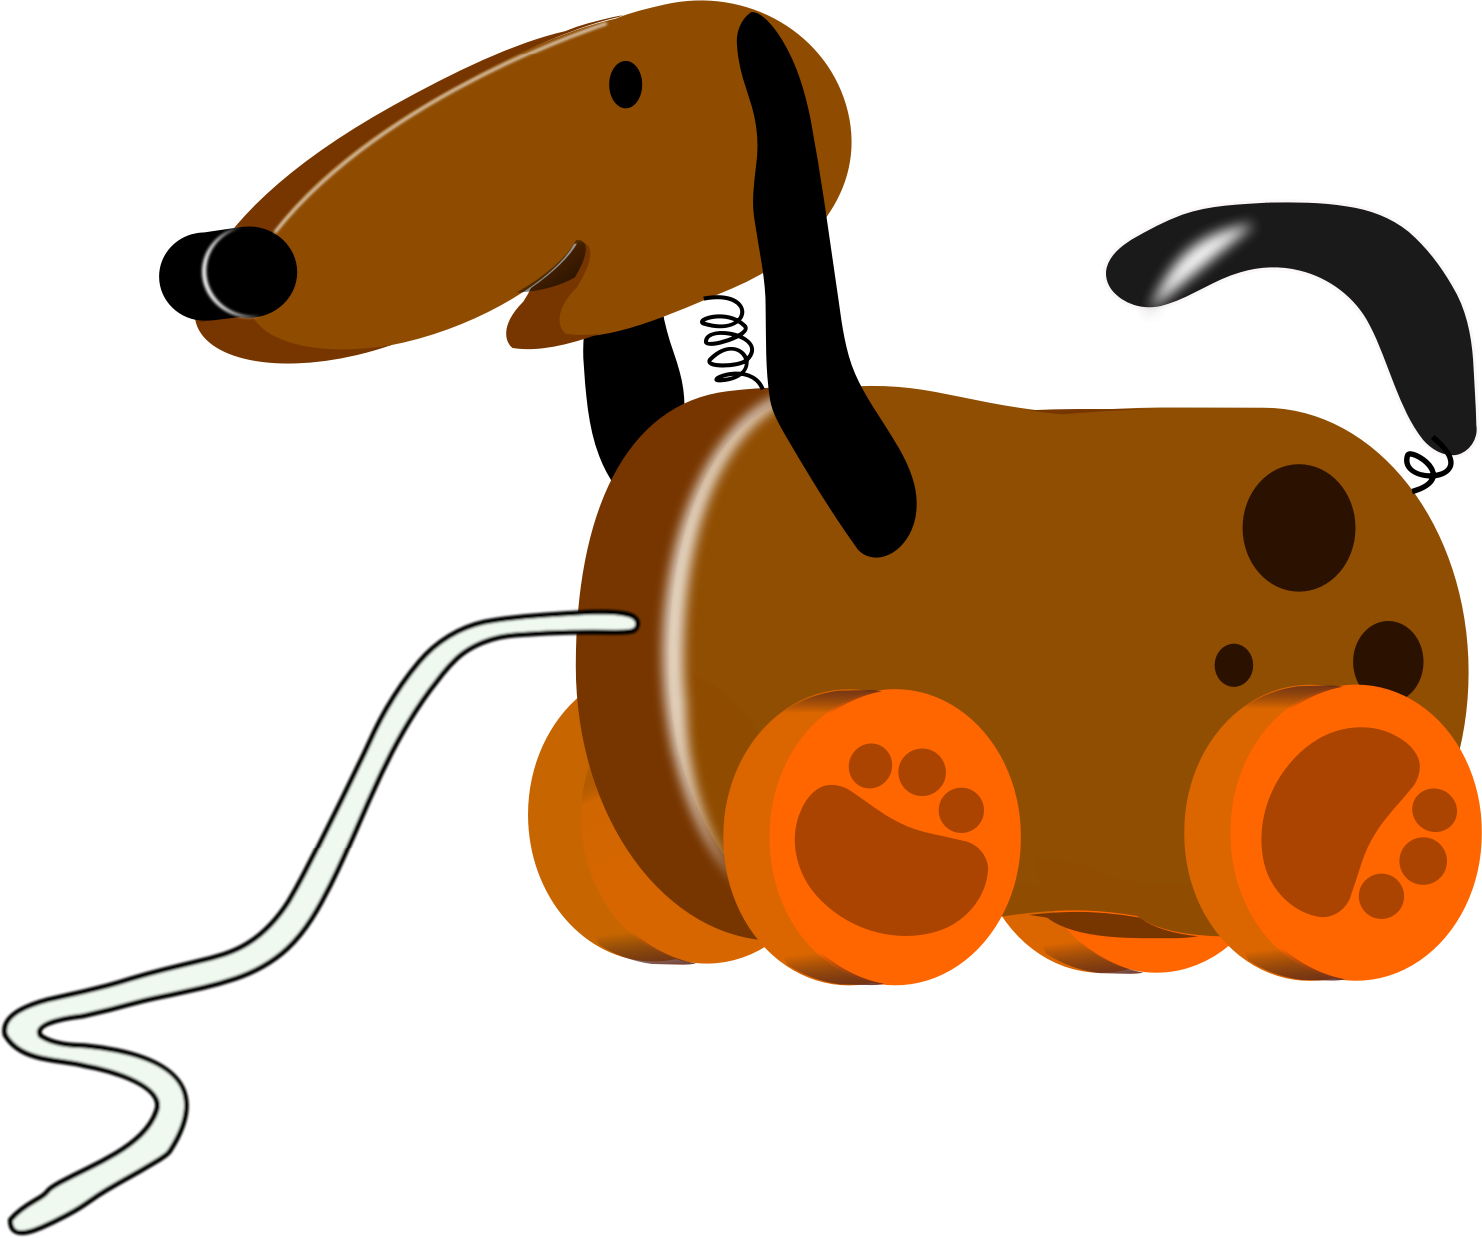 Clipart dog toy svg library download 28+ Collection of Toy Dog Clipart | High quality, free cliparts ... svg library download